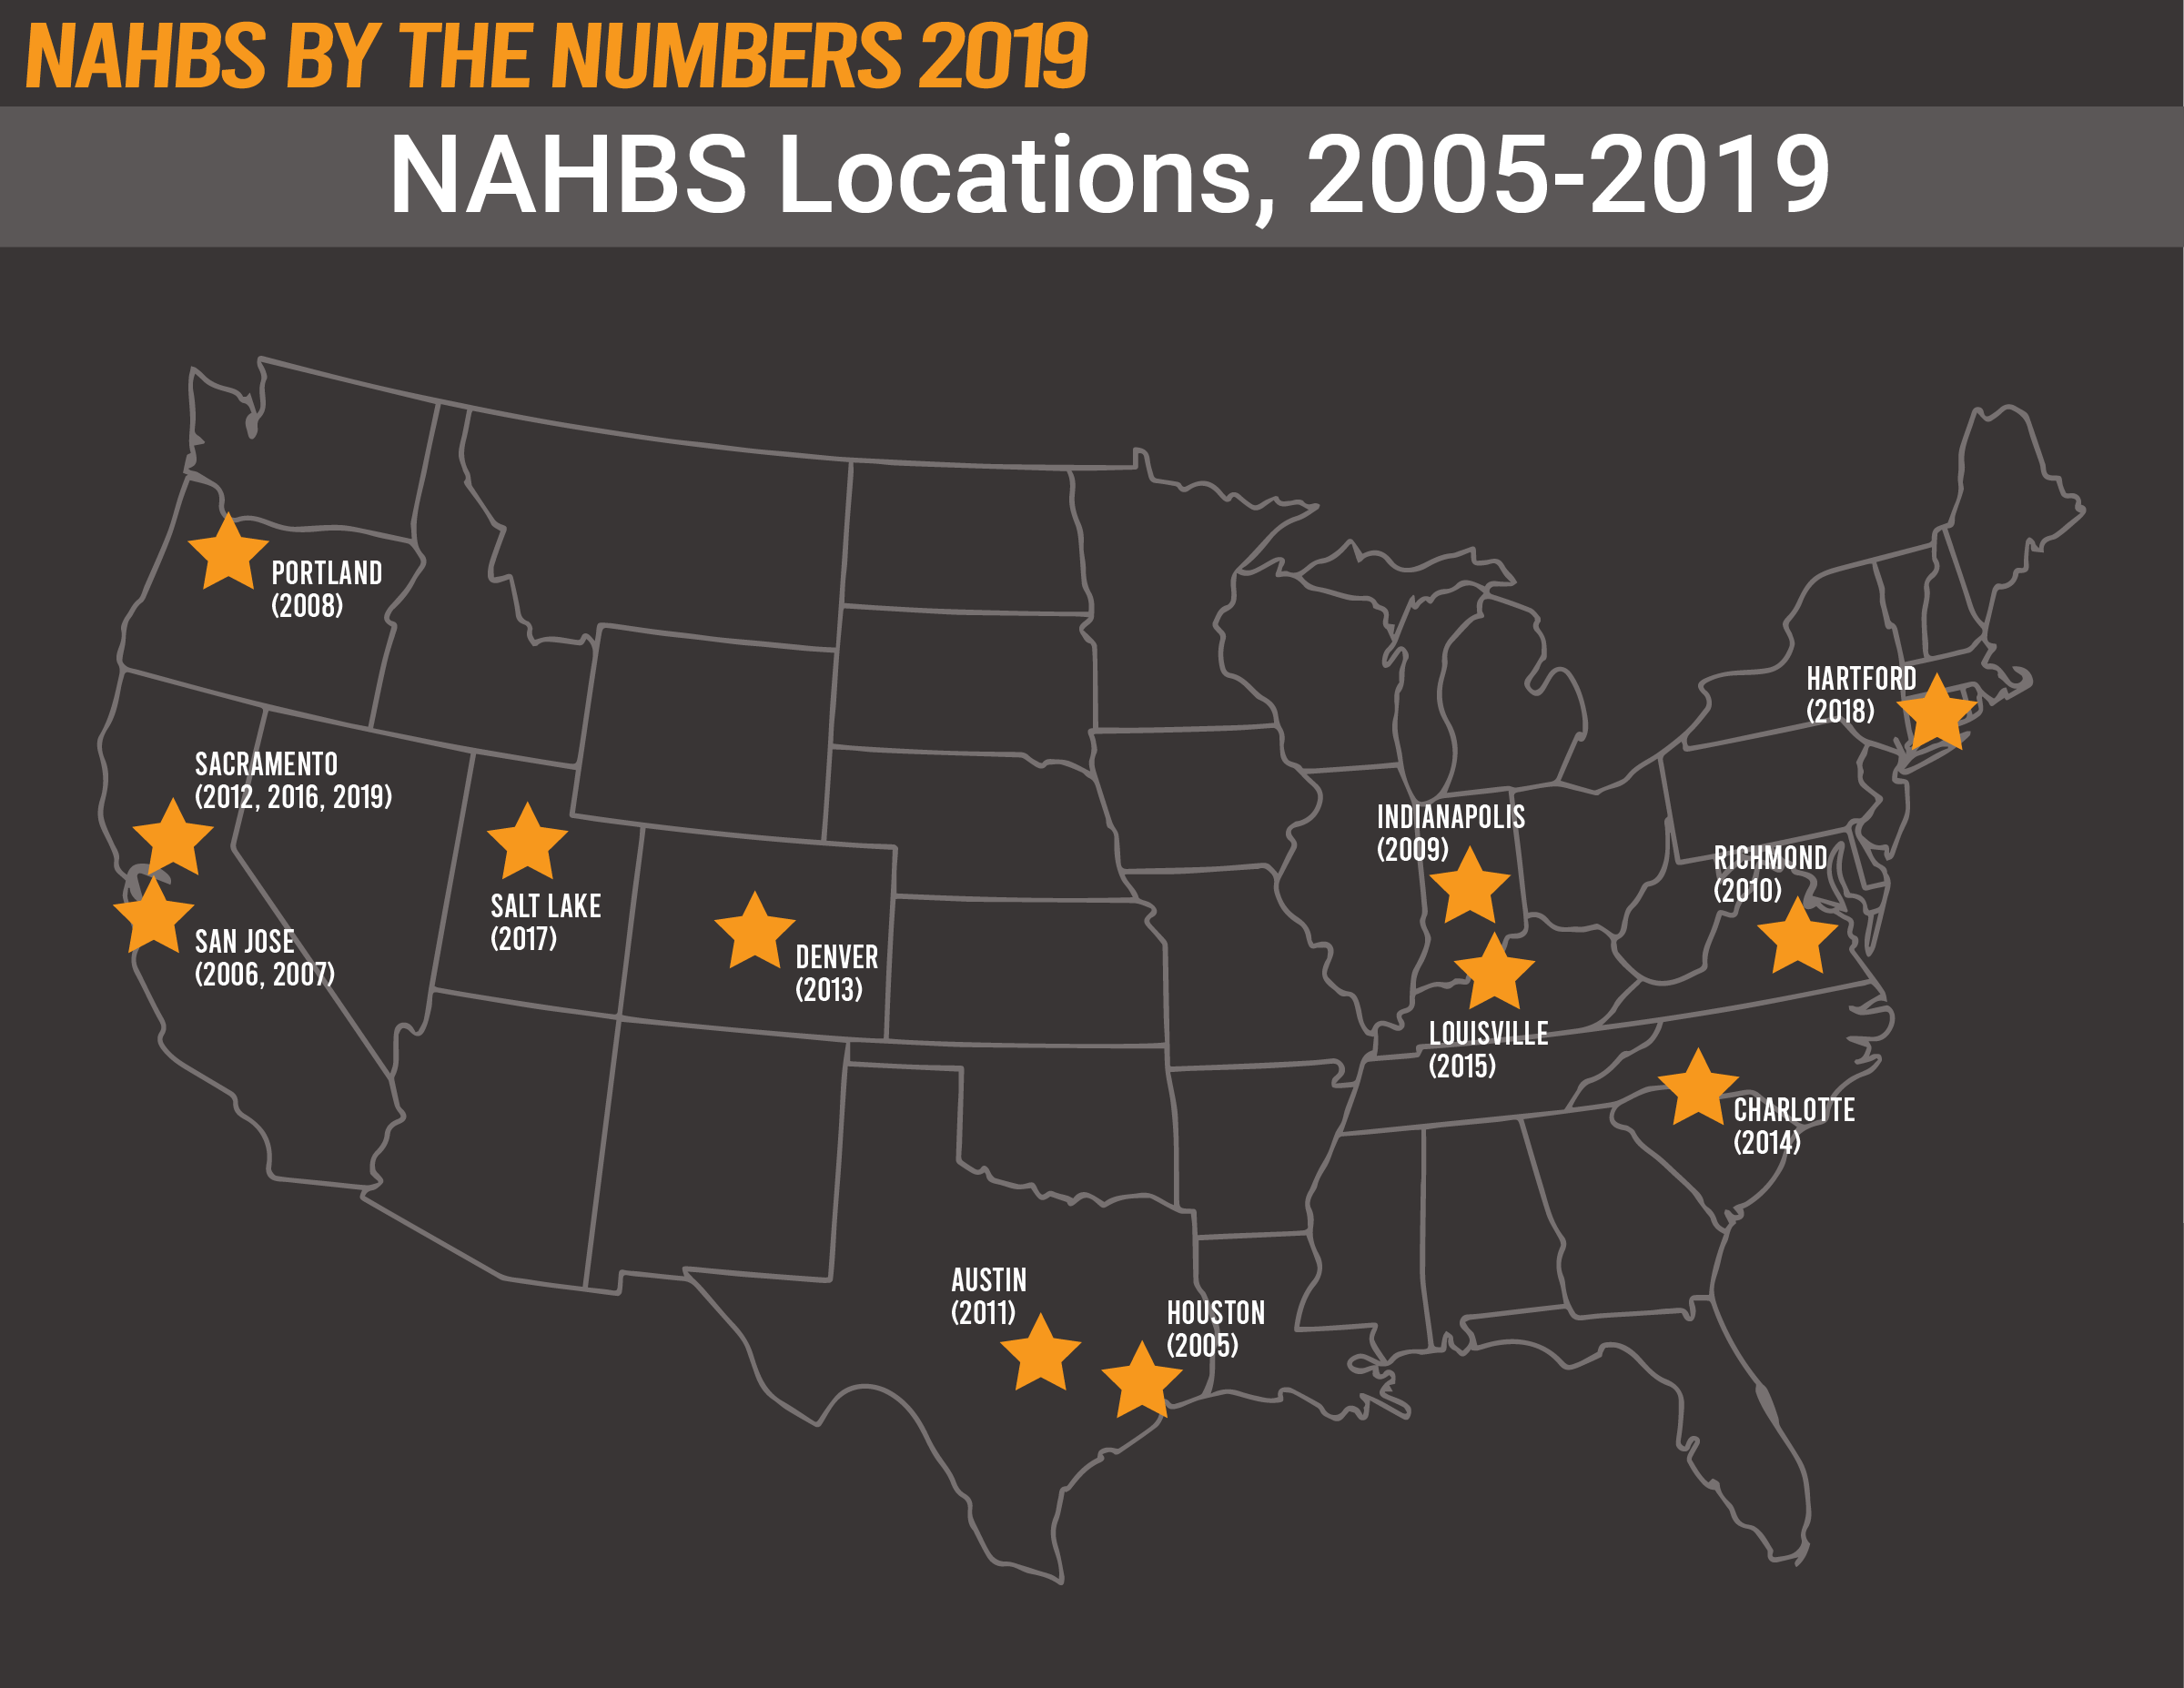 NAHBS by the NUMBERS 2019, NAHBS locations